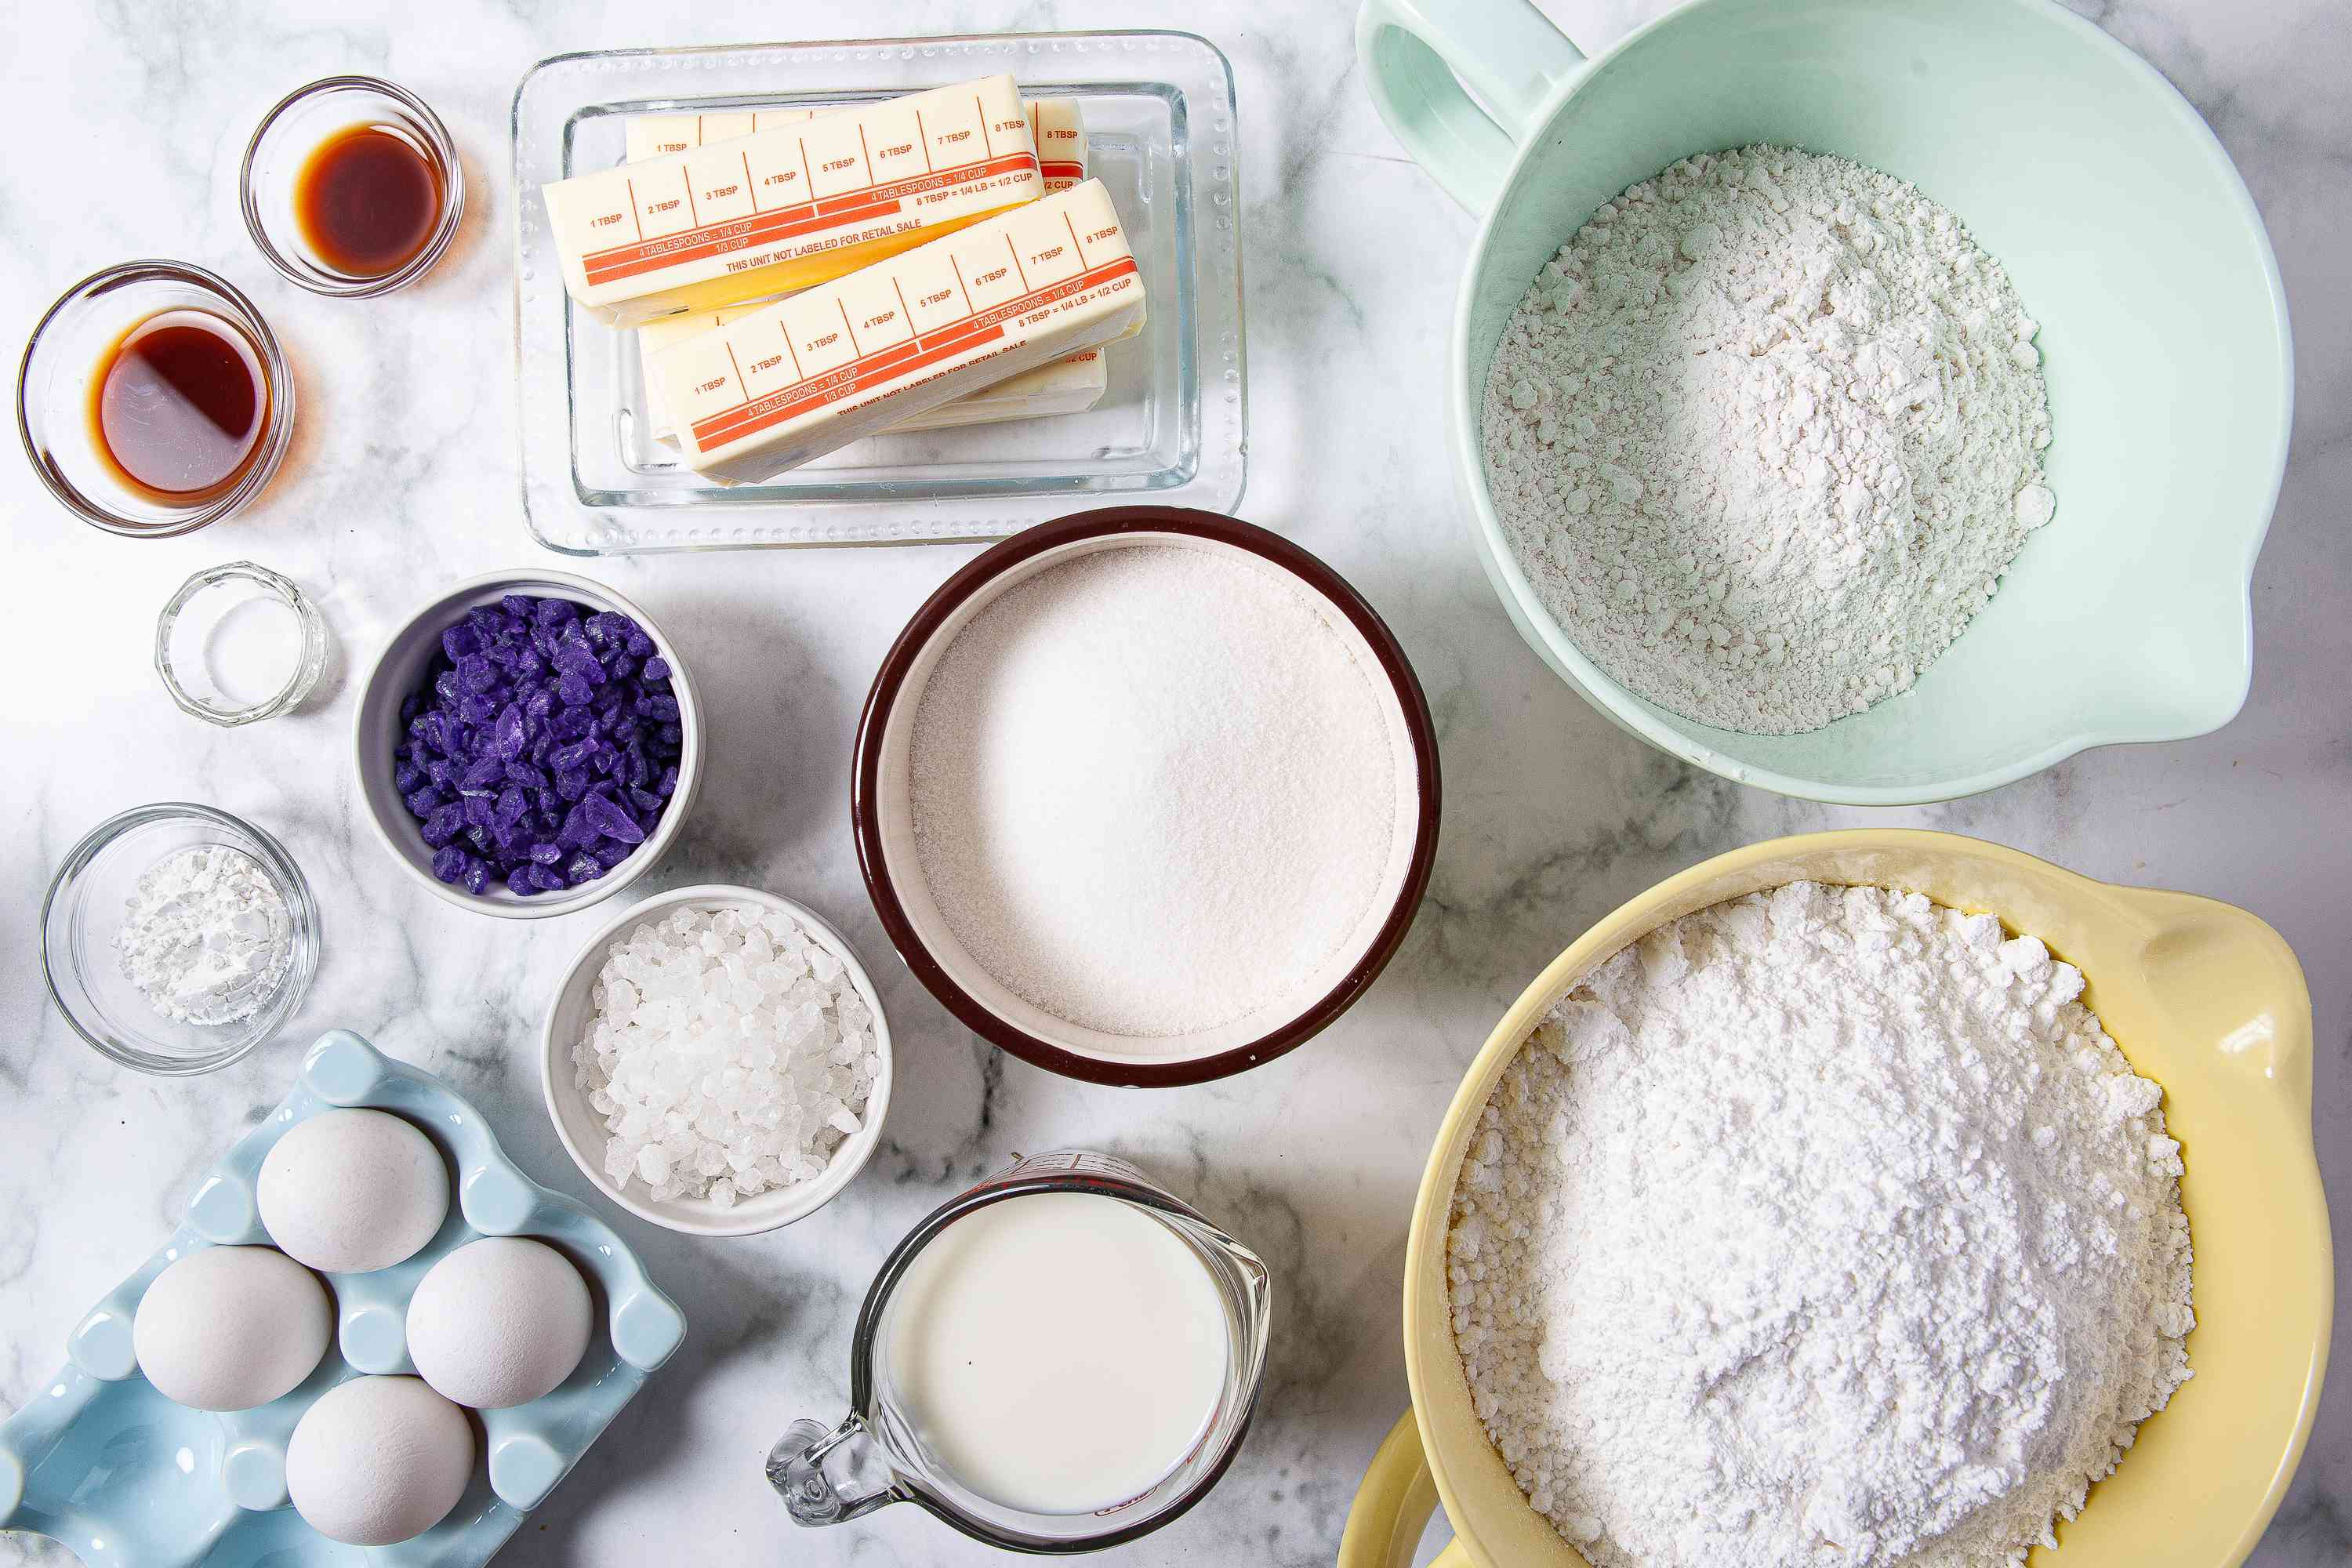 Ingredients for making a geode cake